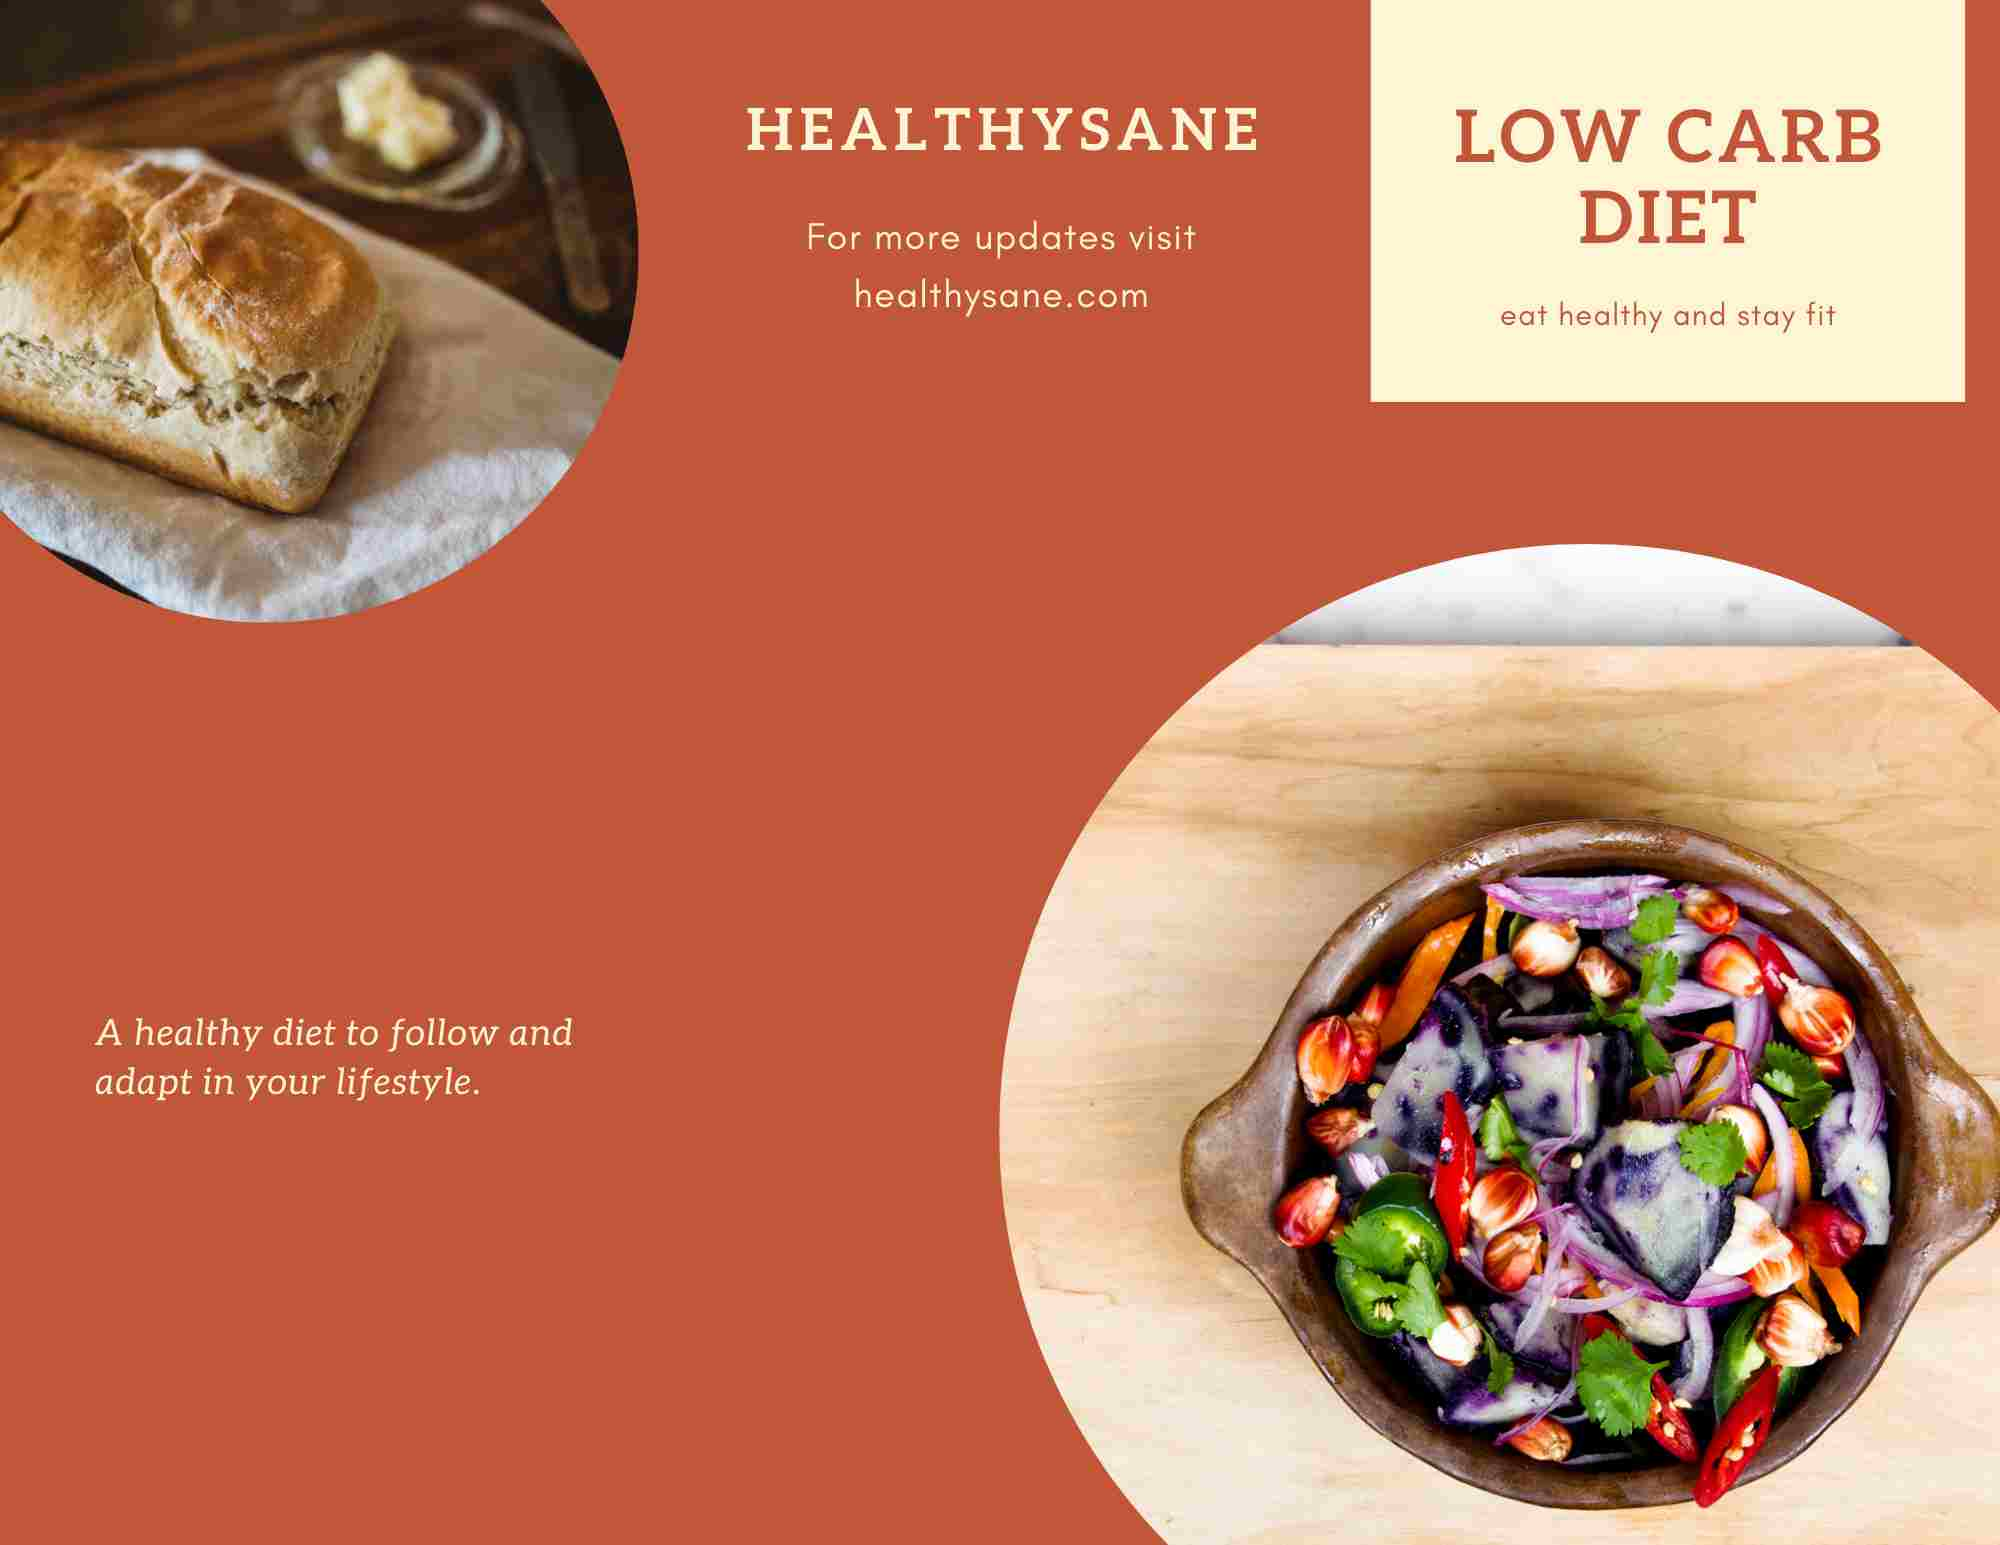 Low carb diet, weight loss